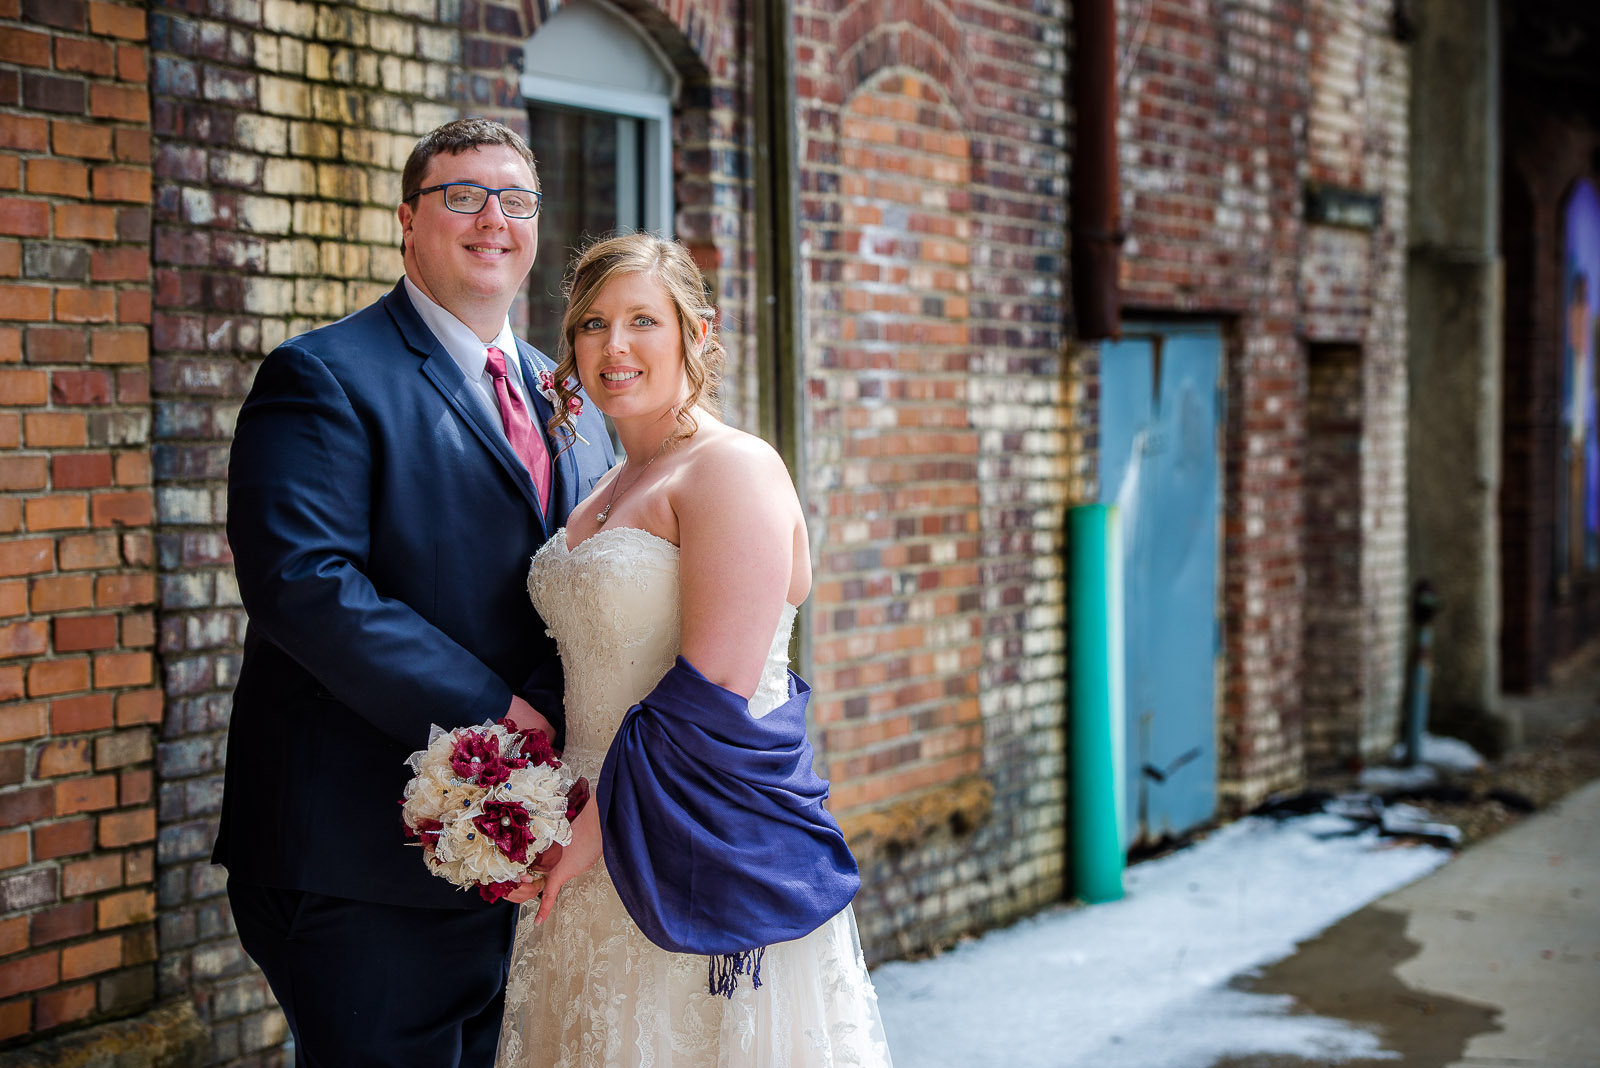 Eric_and_Christy_Photography_Blog_Wedding_Karen_Nick-32